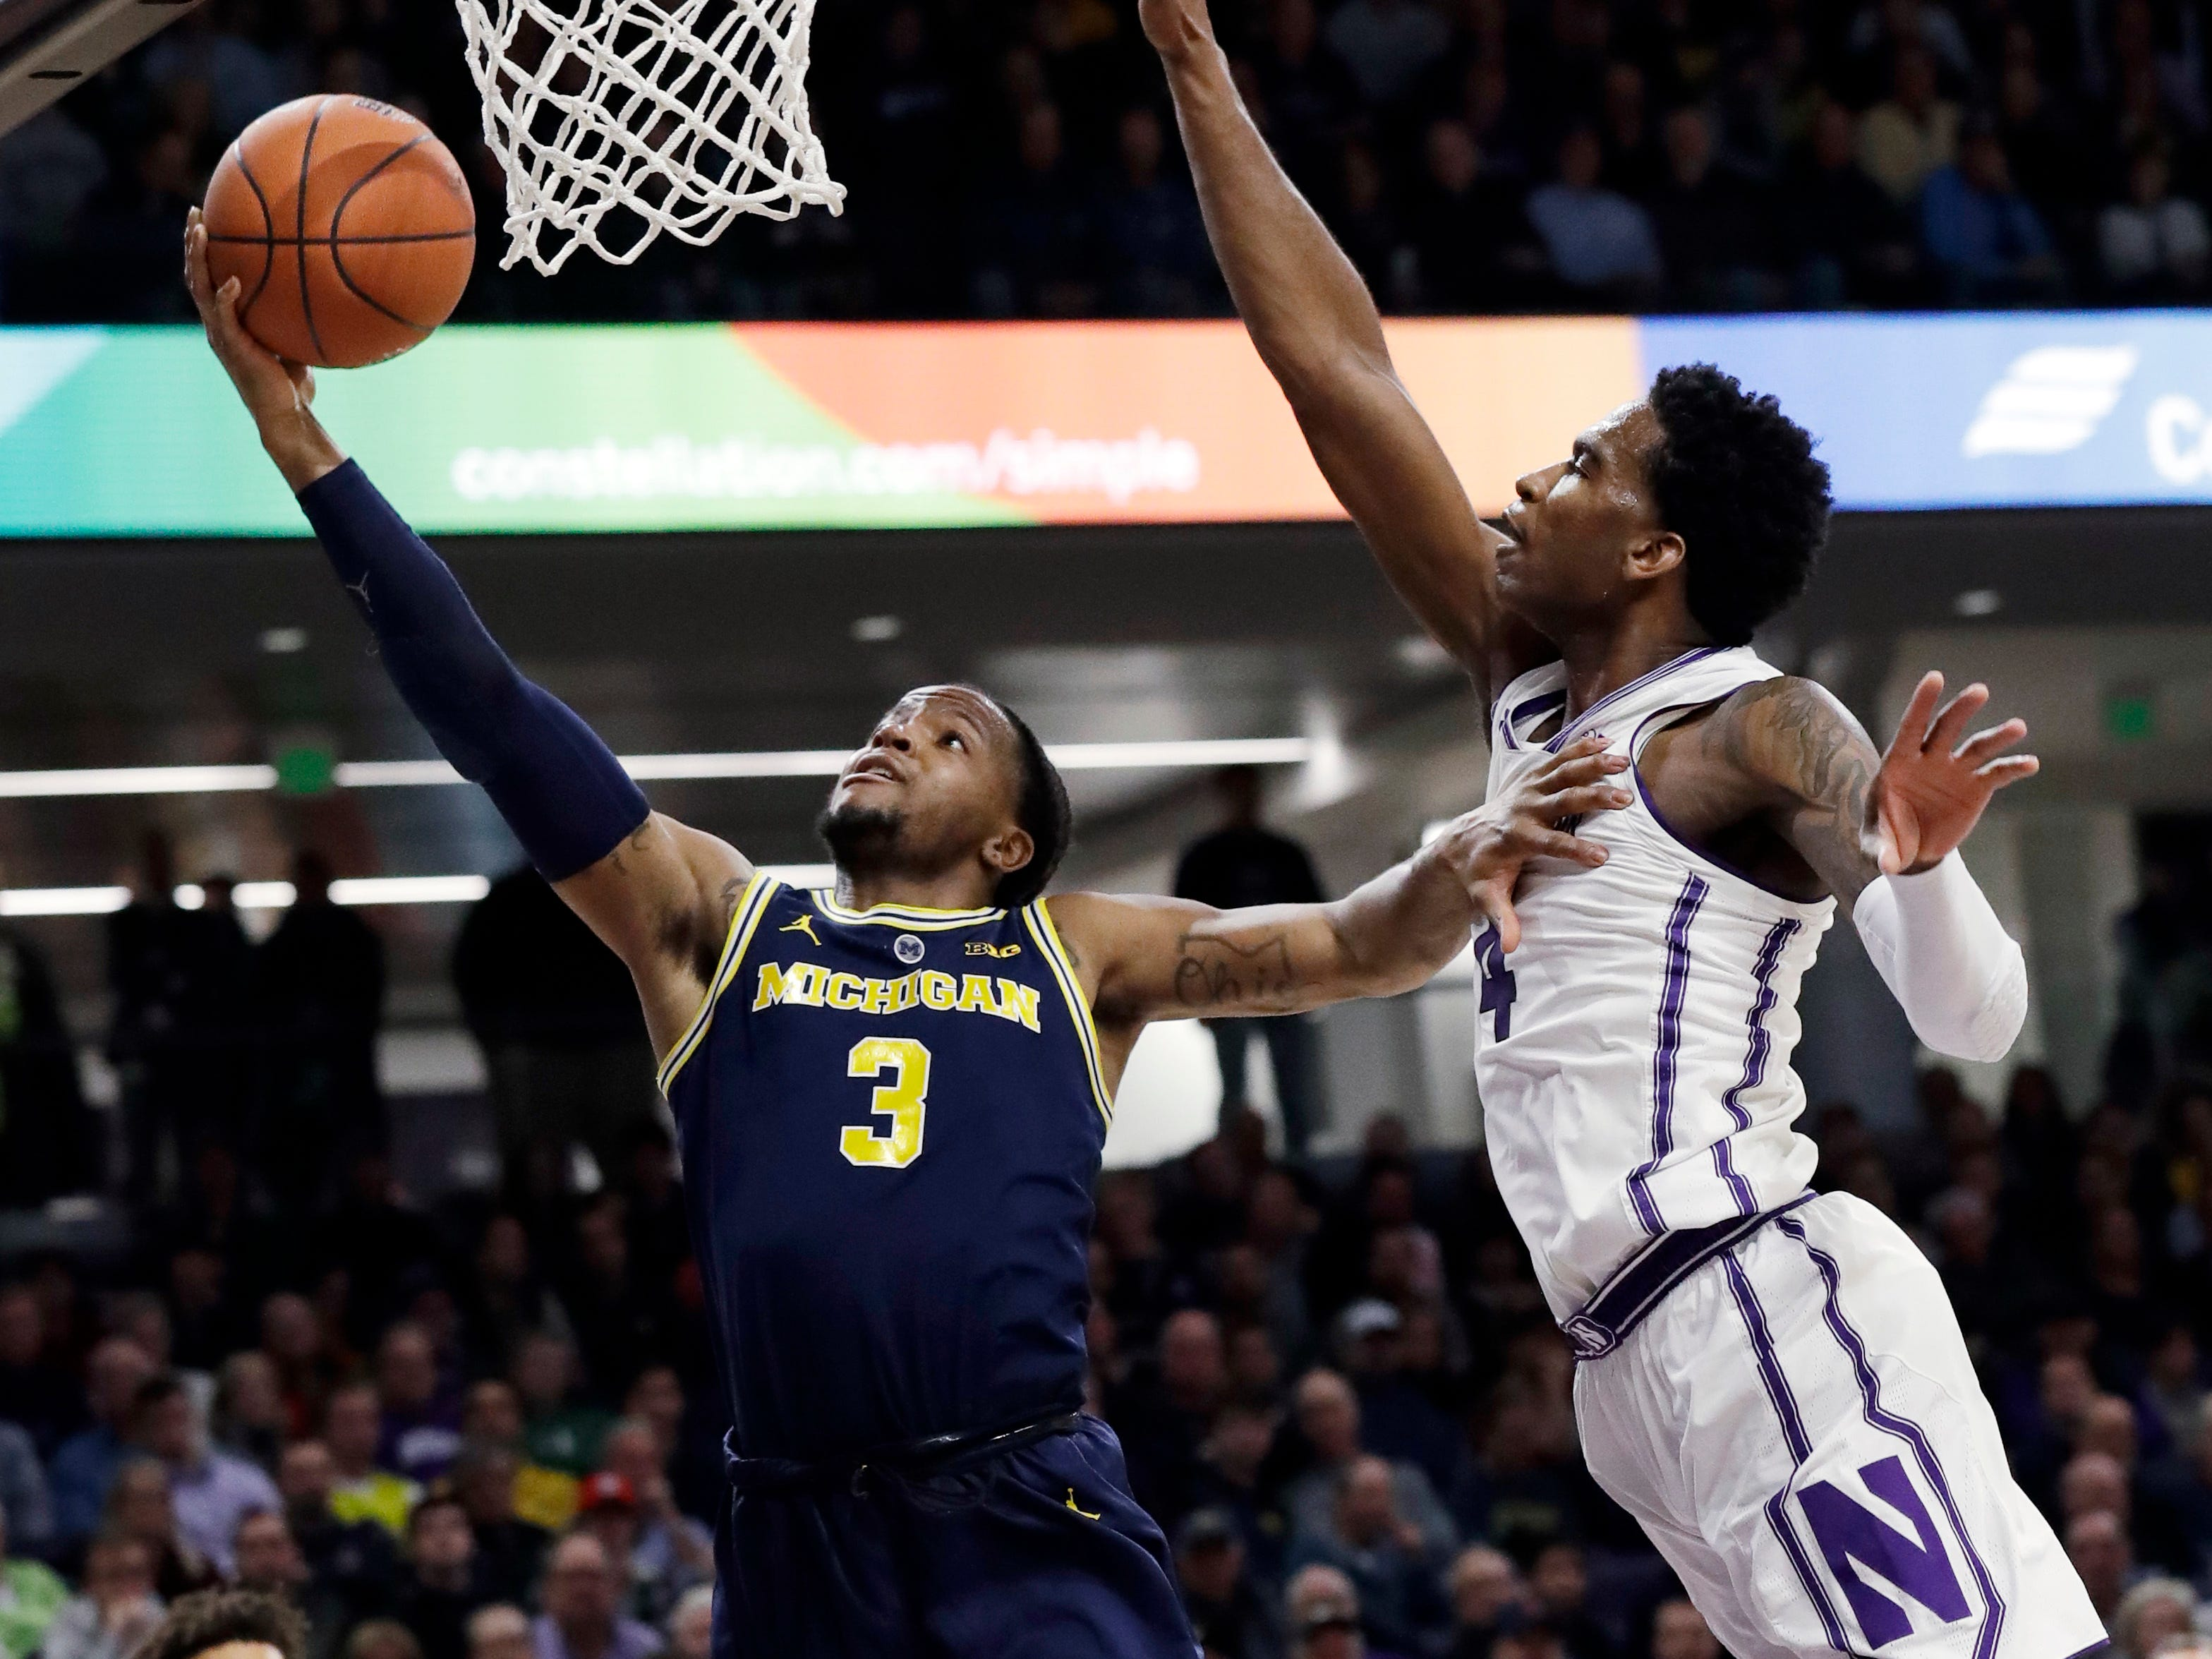 Michigan guard Zavier Simpson shoots against Northwestern forward Vic Law during the first half Tuesday, Dec. 4, 2018, in Evanston, Ill.